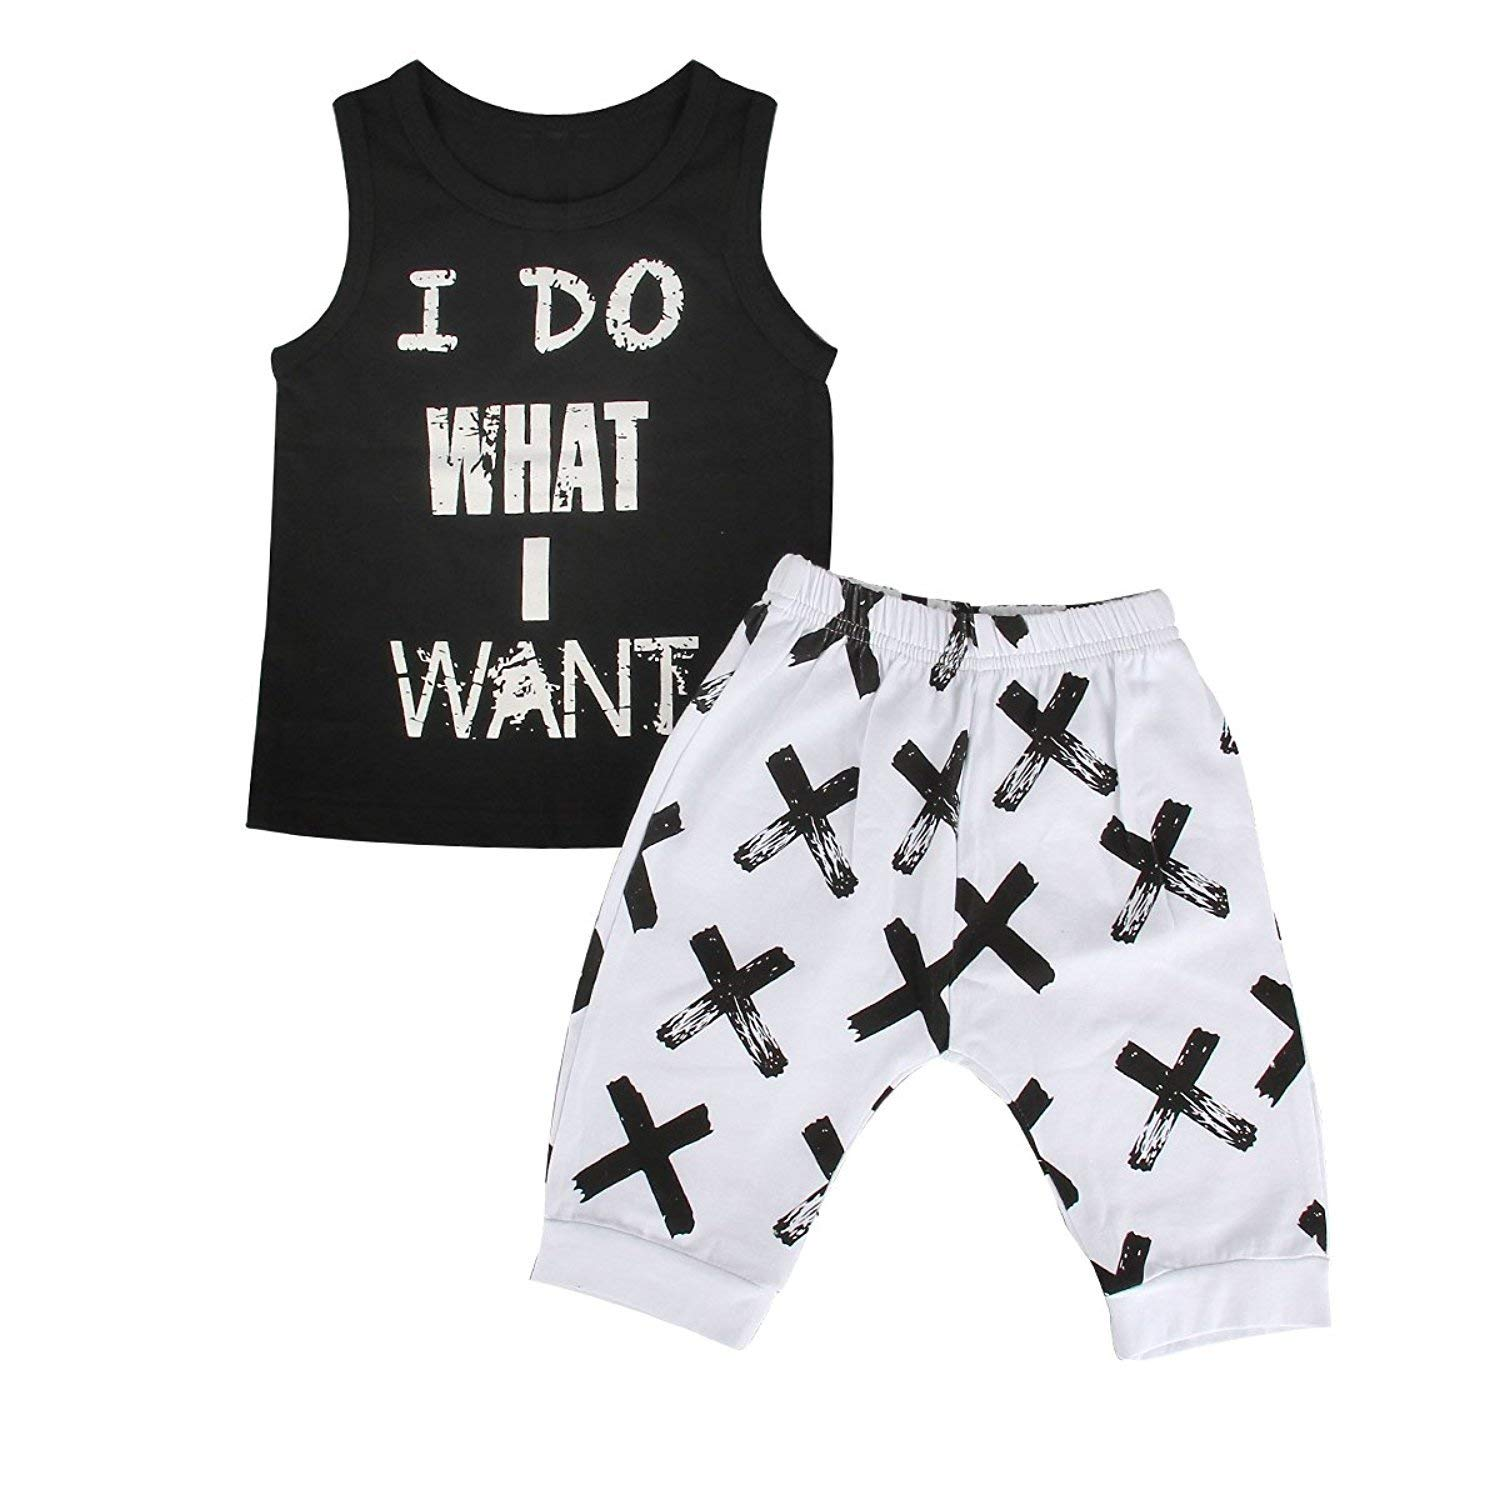 16cf968c0 Get Quotations · Gprince Little Boys Summer Cool Sleeveless Vest Tank Top  and Shorts Pants Outfits Sets